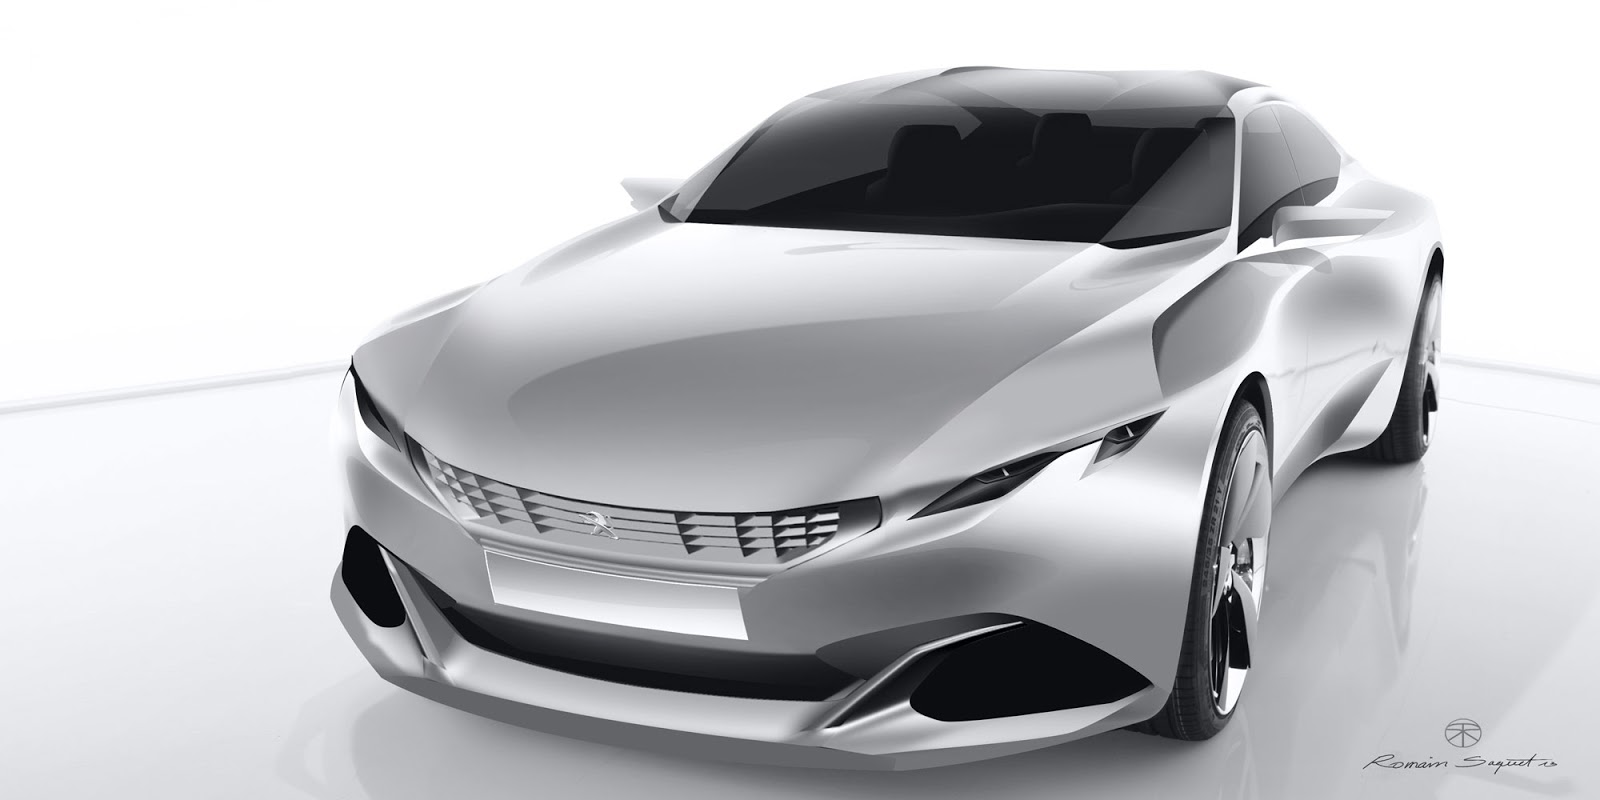 Peugeot Exalt concept front view, render by Romain Saquet